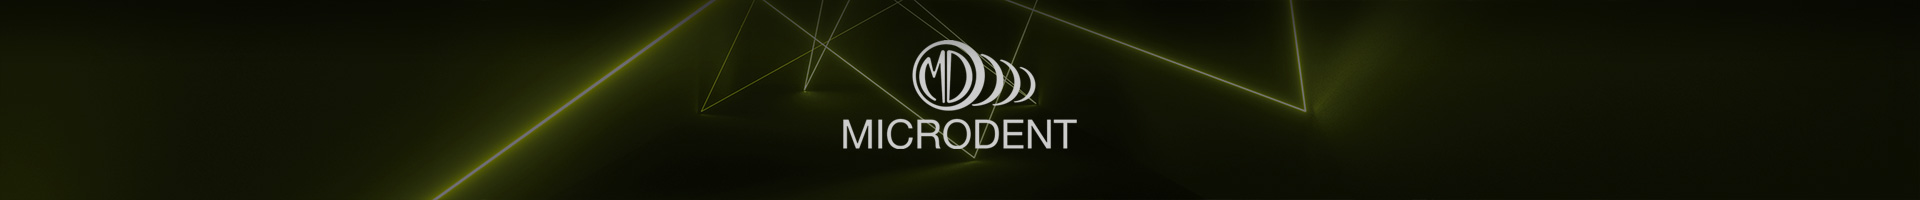 Microdent Trylogic®